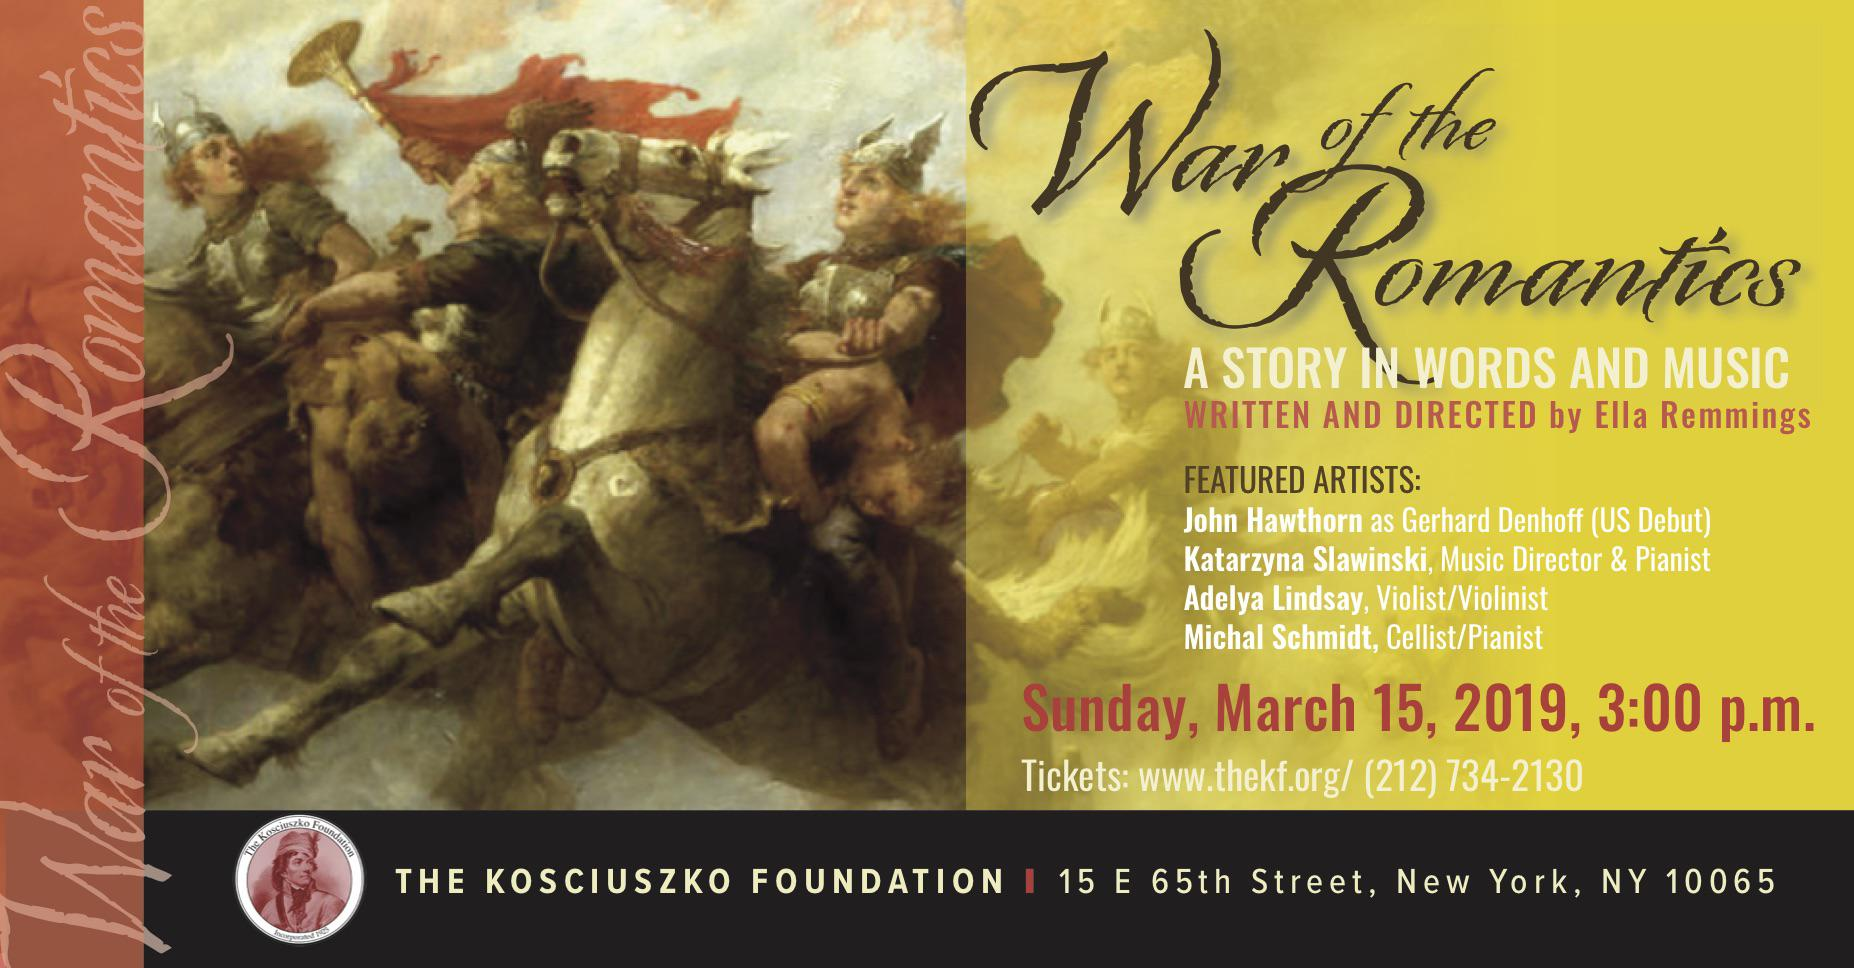 The Kosciuszko Foundation in NYC: War of the Romantics - A Story in Words and Music